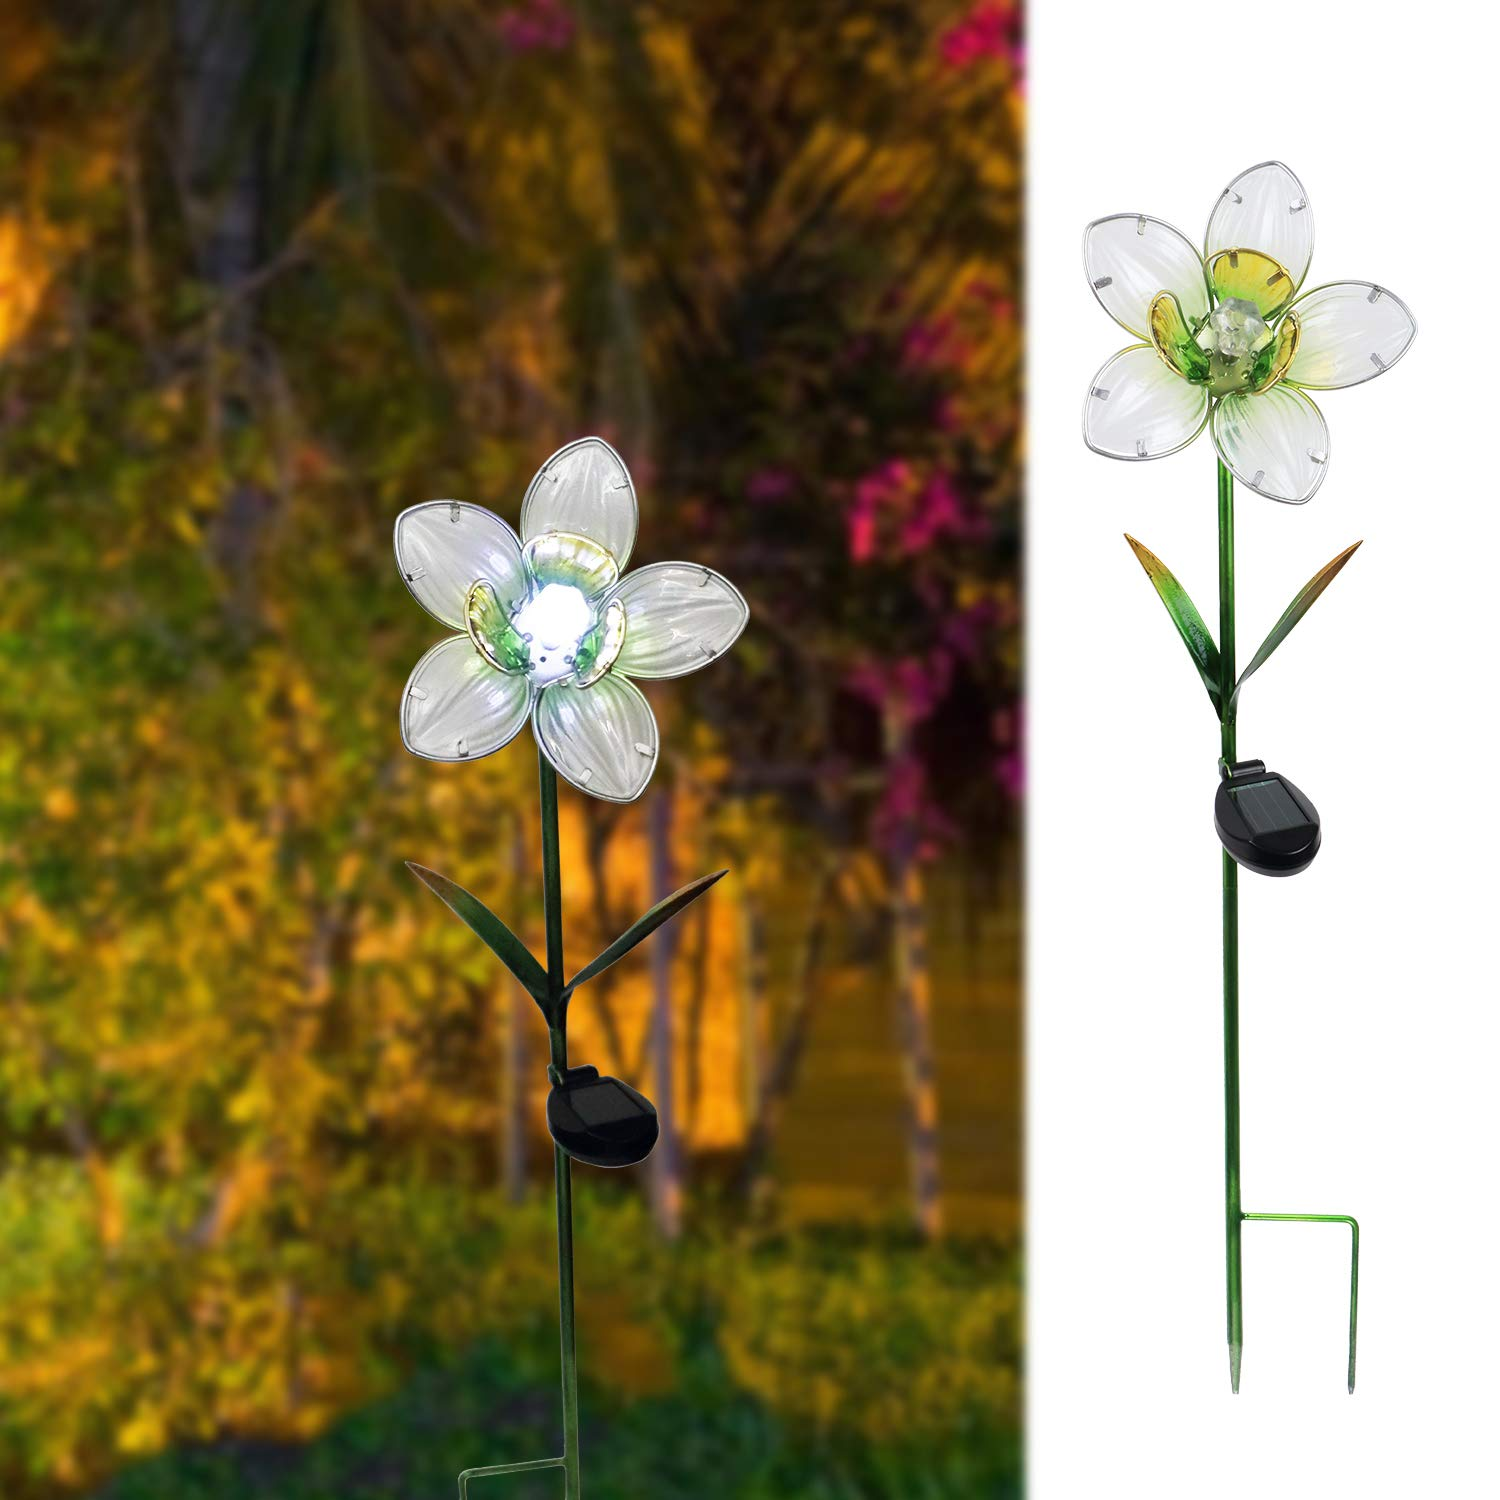 MUMTOP Solar Garden Lights Flower Metal Stakes Outdoor Solar Lights for Lawn Yard Patio Decor (White) by MUMTOP